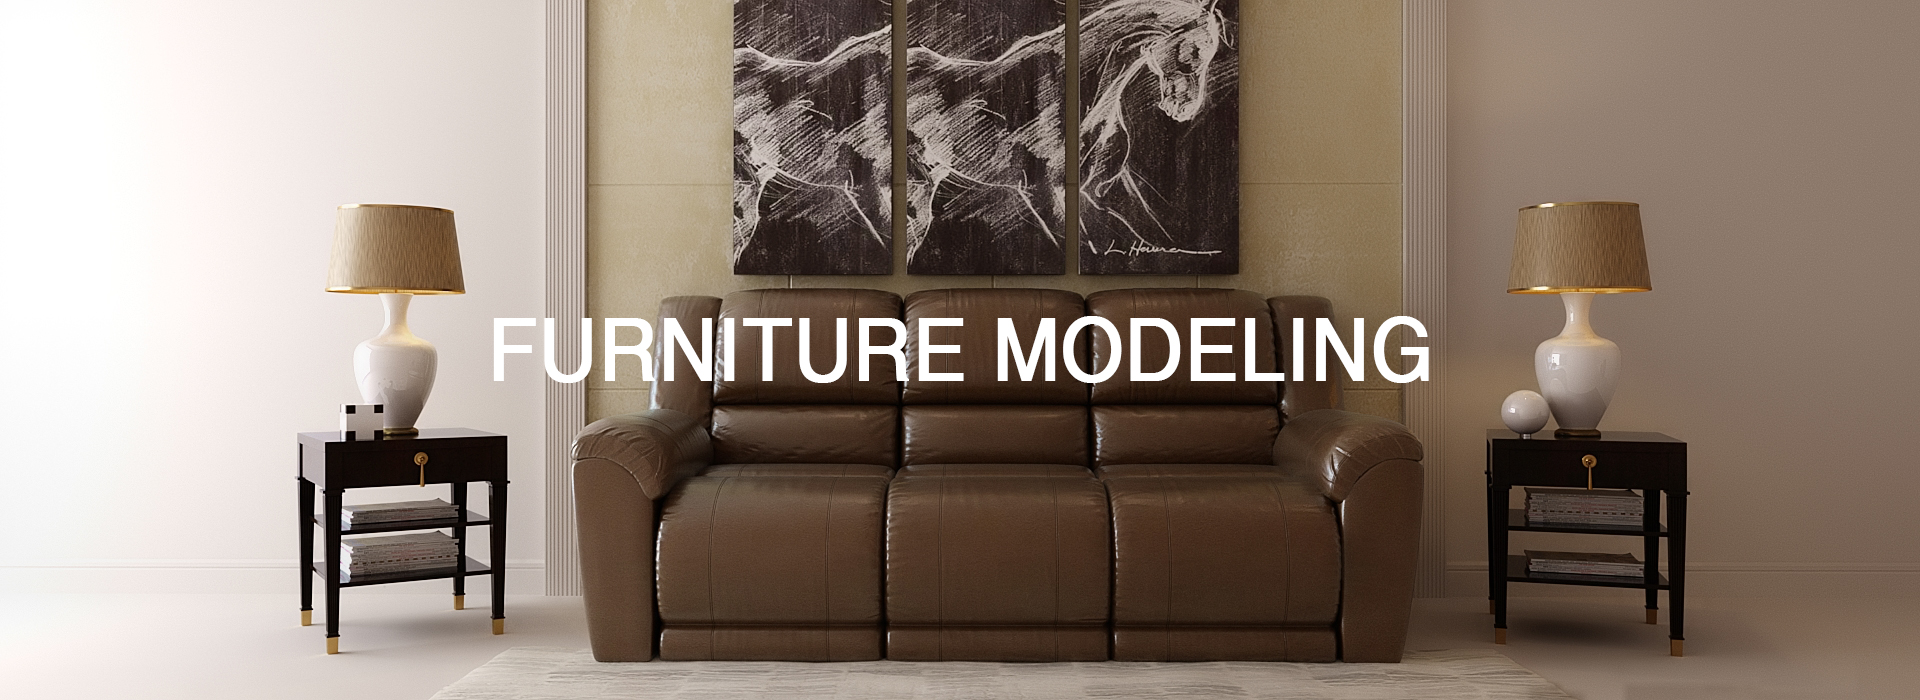 Furniture Modeling Services